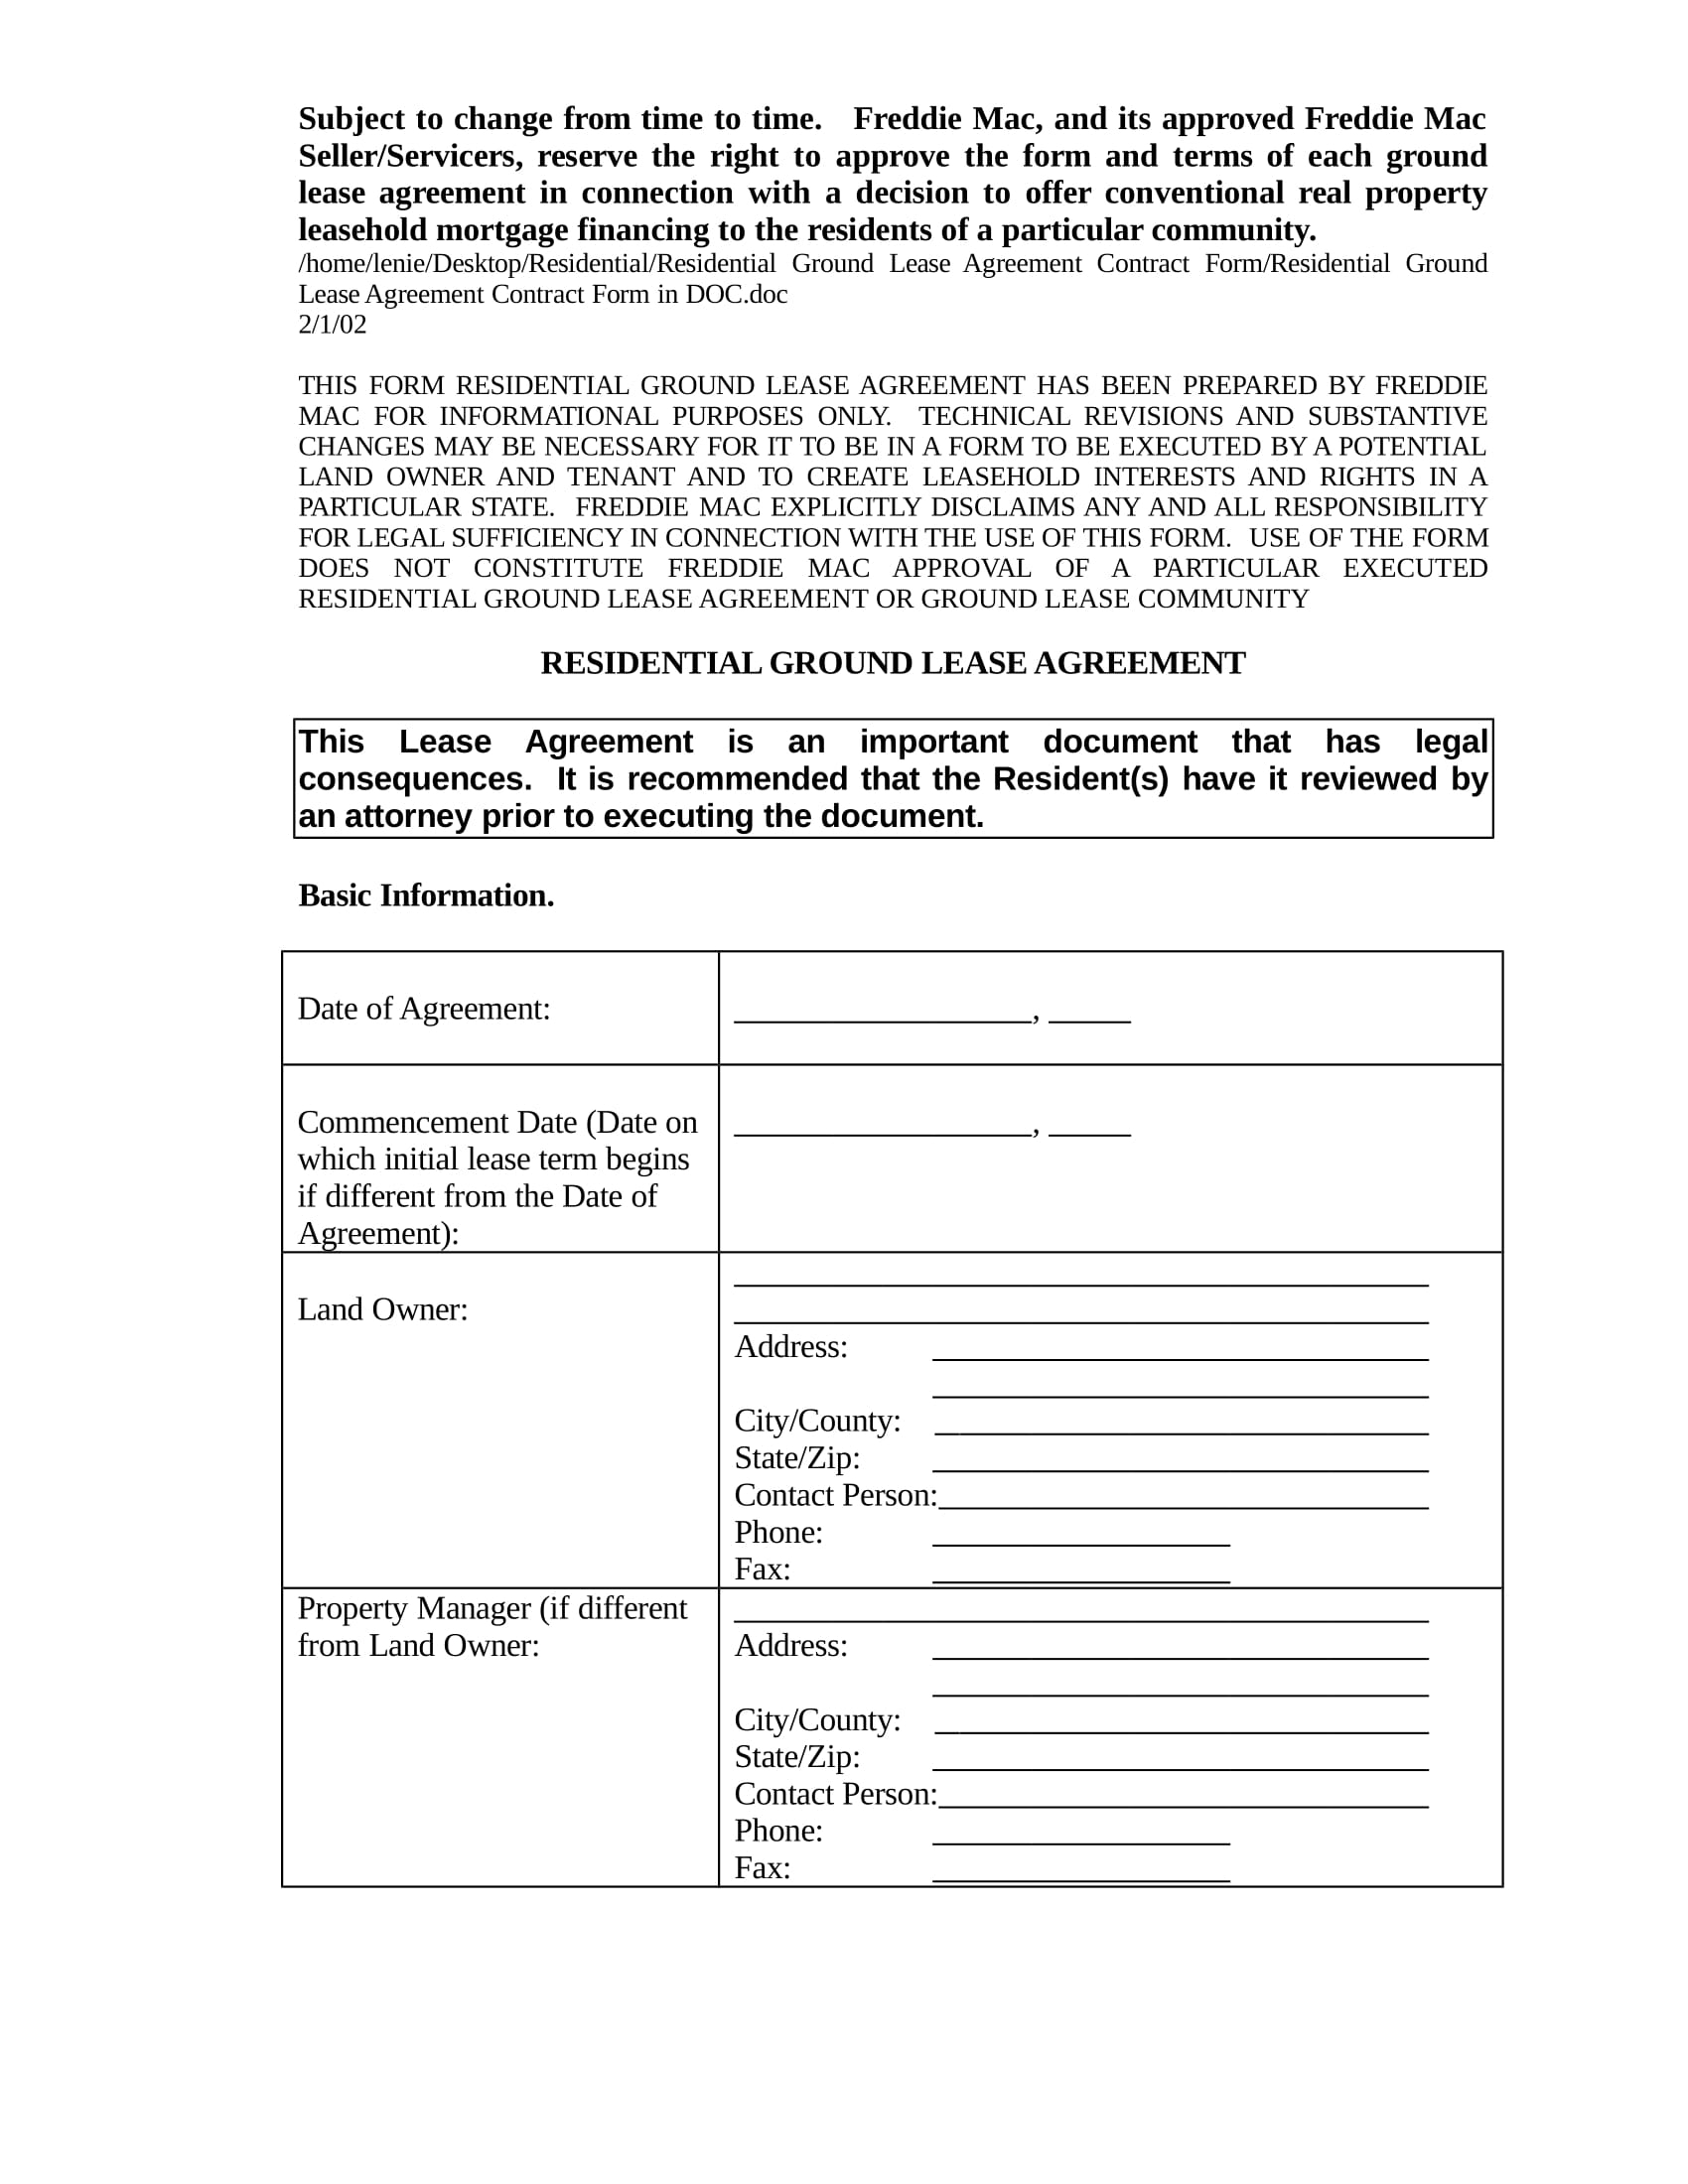 residential ground lease agreement contract form in doc 01